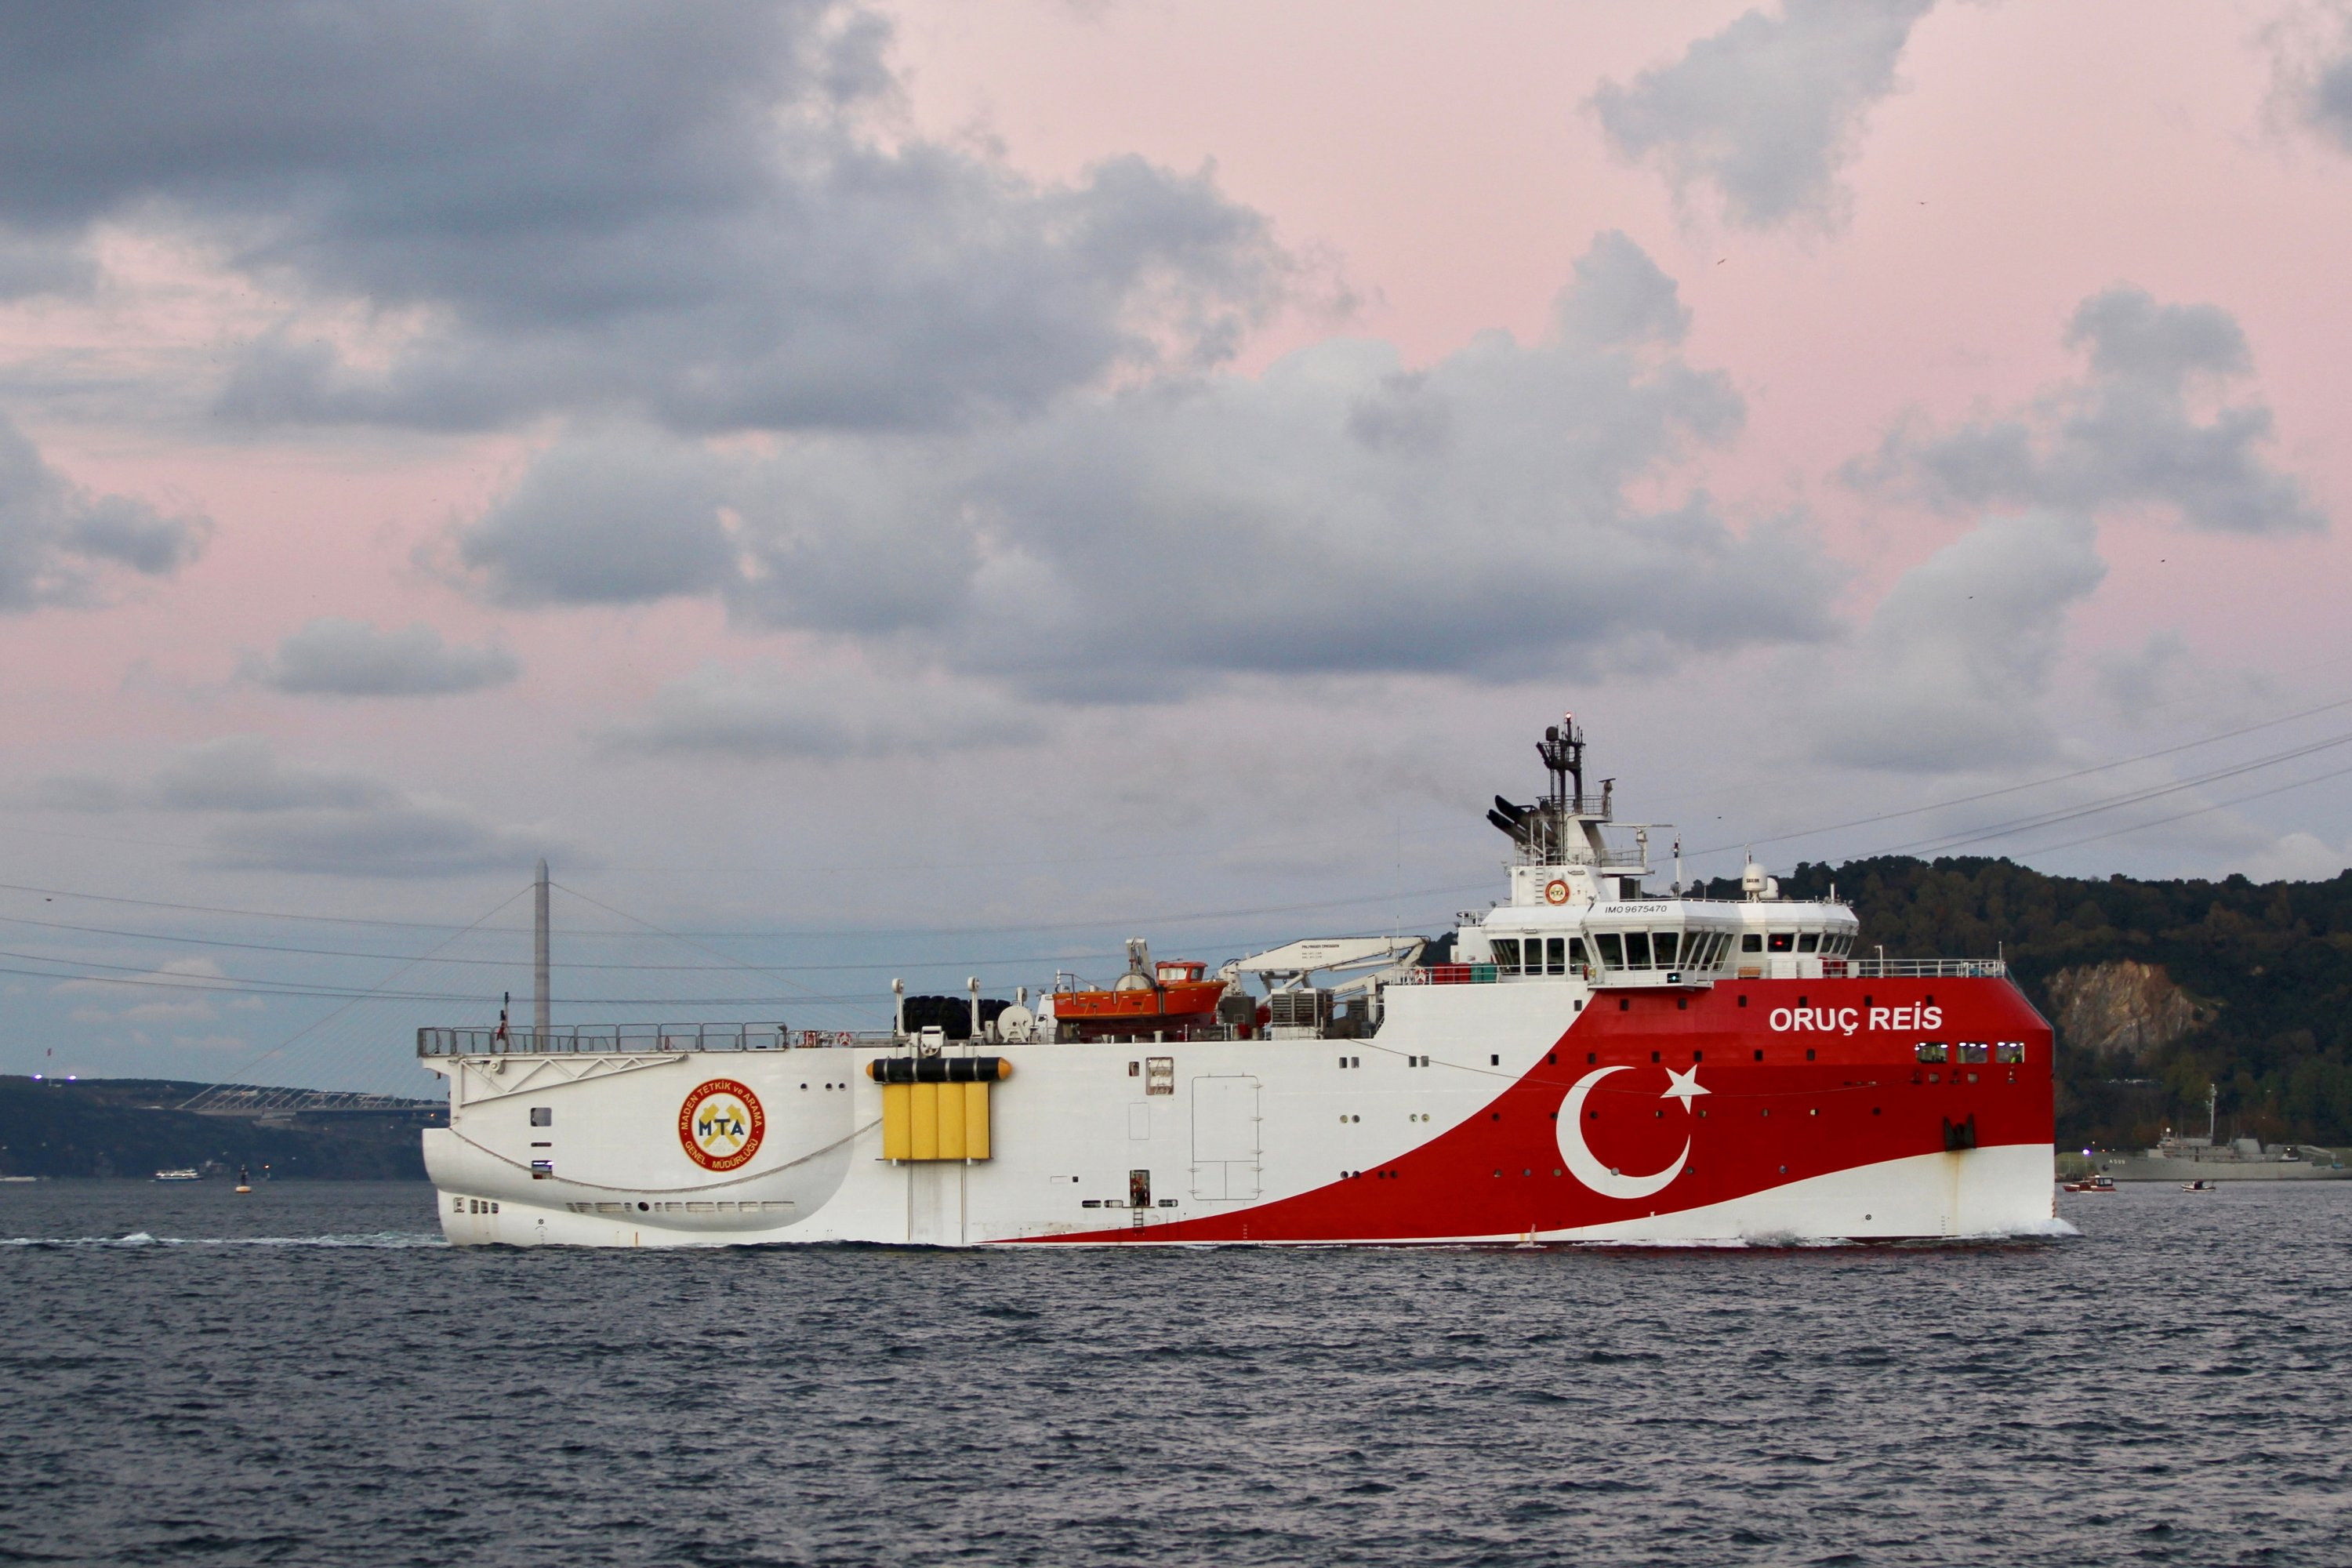 Captain of Turkey's seismic vessel Oruç Reis: It's an honor for us to operate in 'Blue Homeland' | Daily Sabah